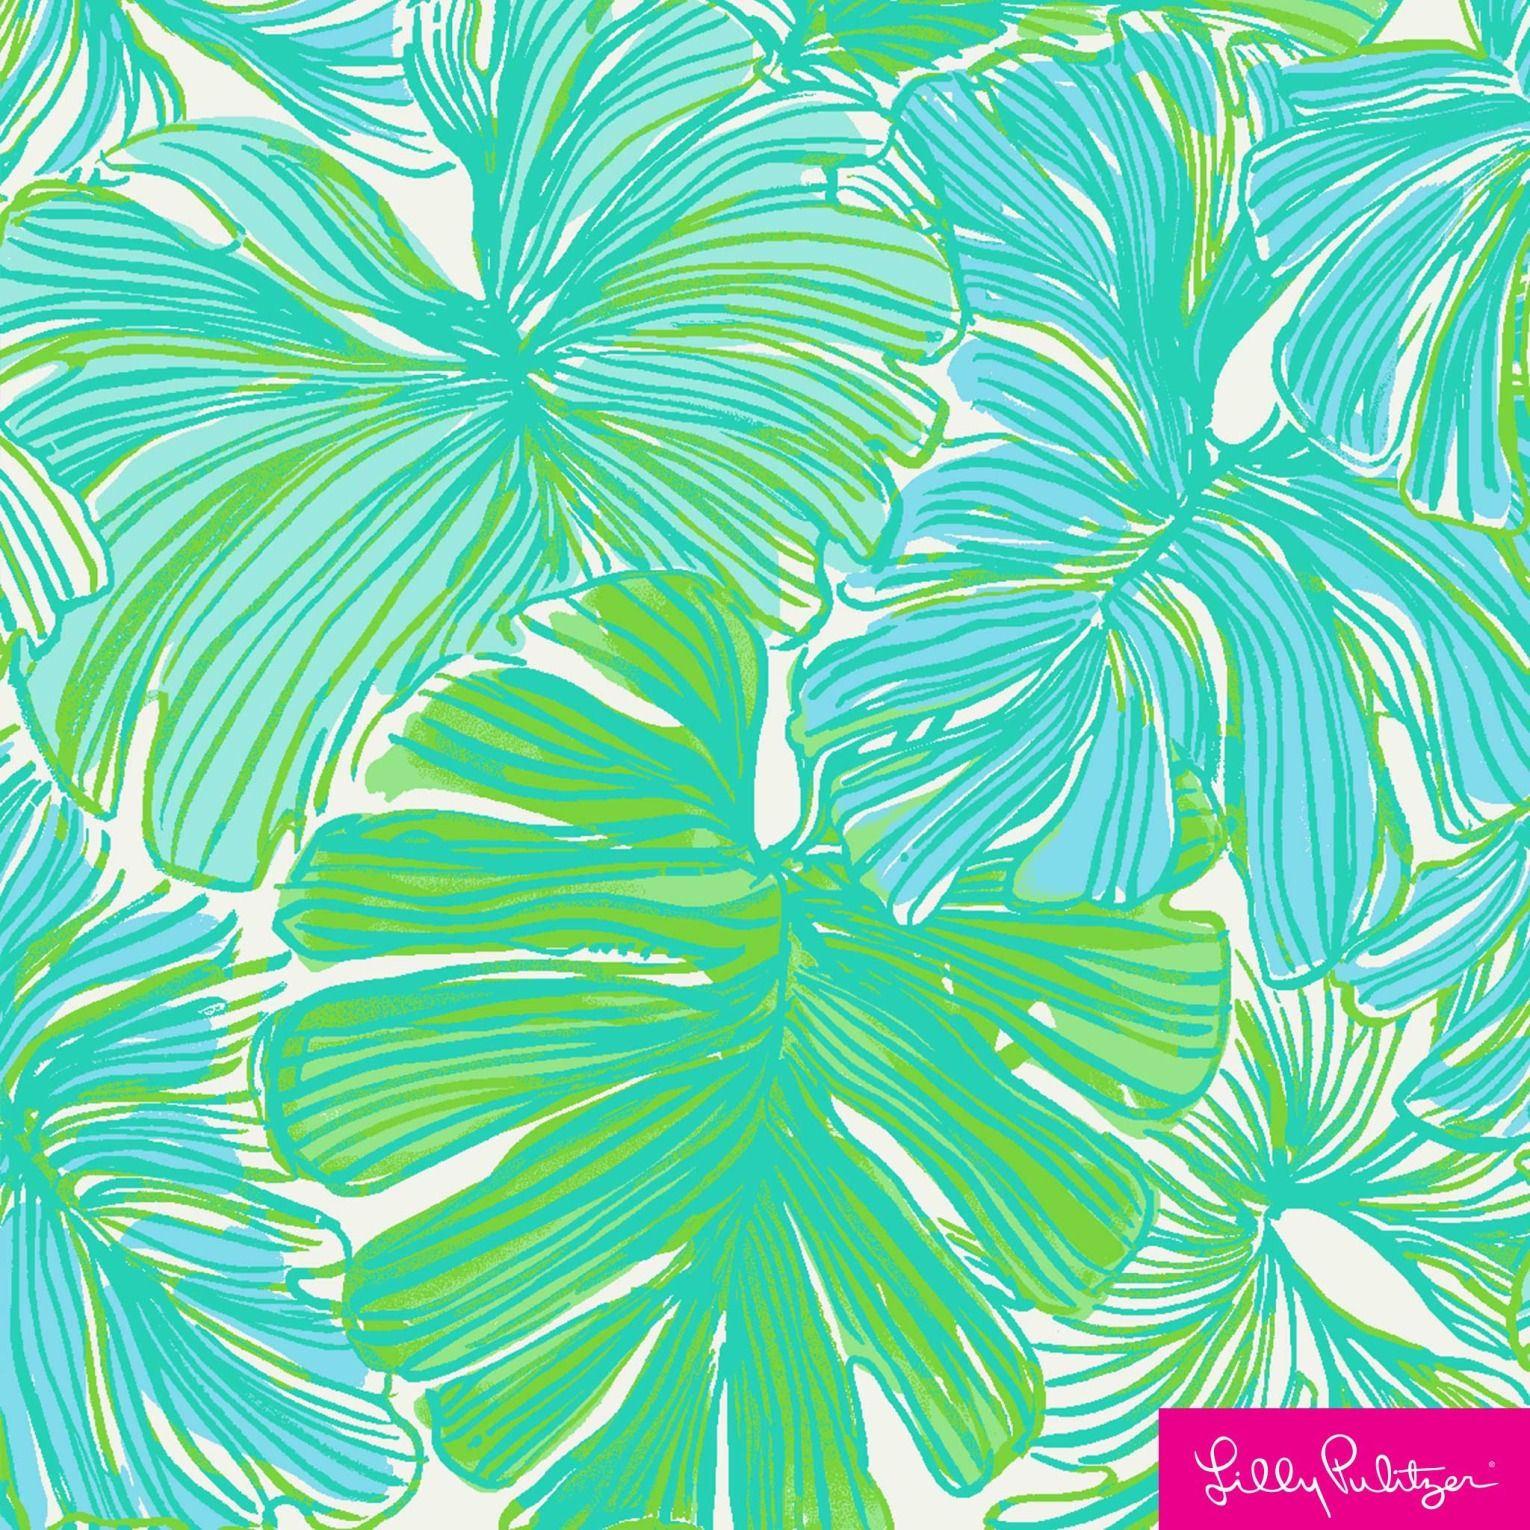 Lilly pulitzer print with green and light blue leaves